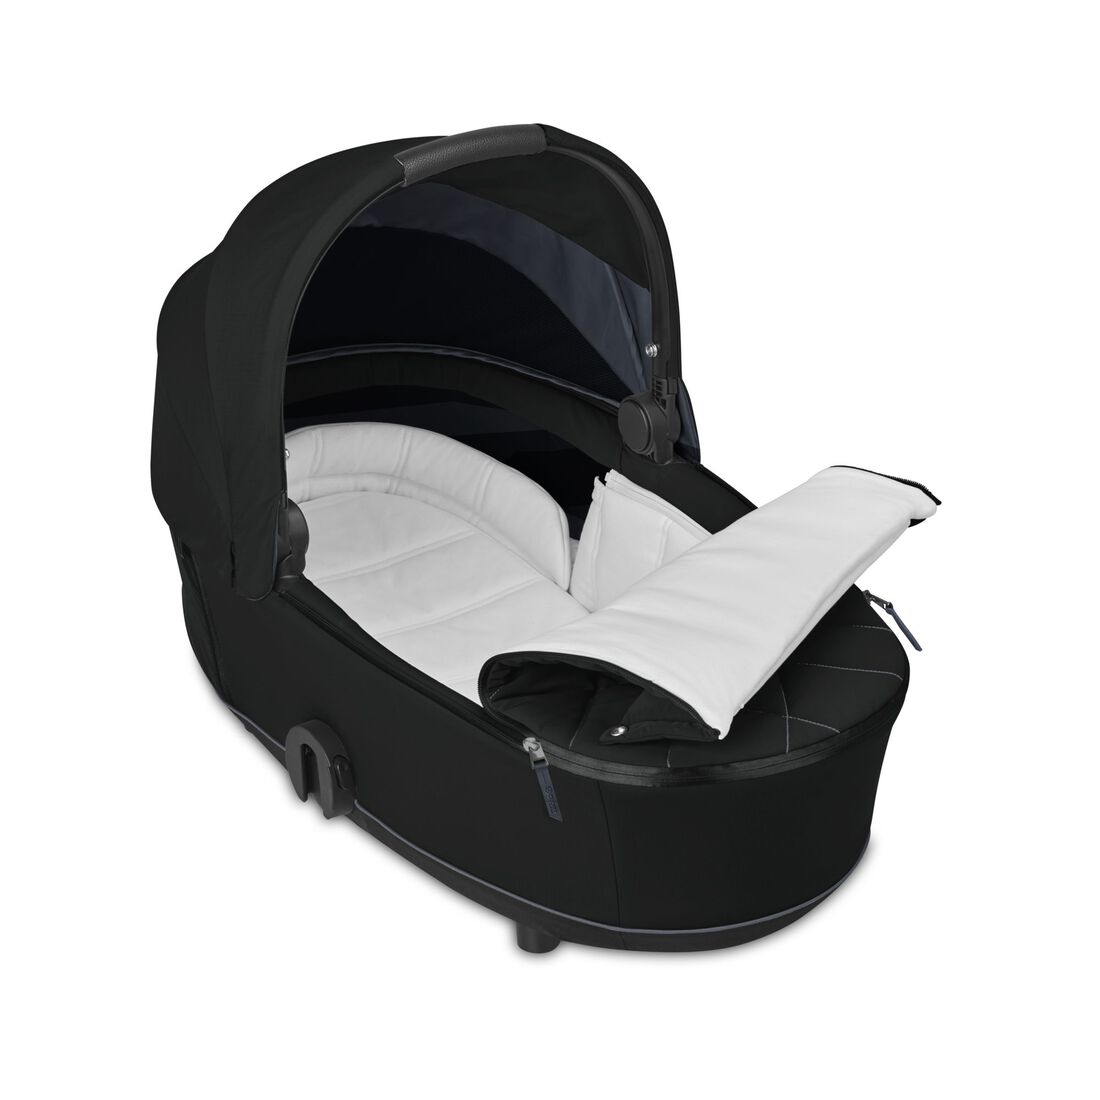 CYBEX Mios Lux Carry Cot - Deep Black in Deep Black large image number 2